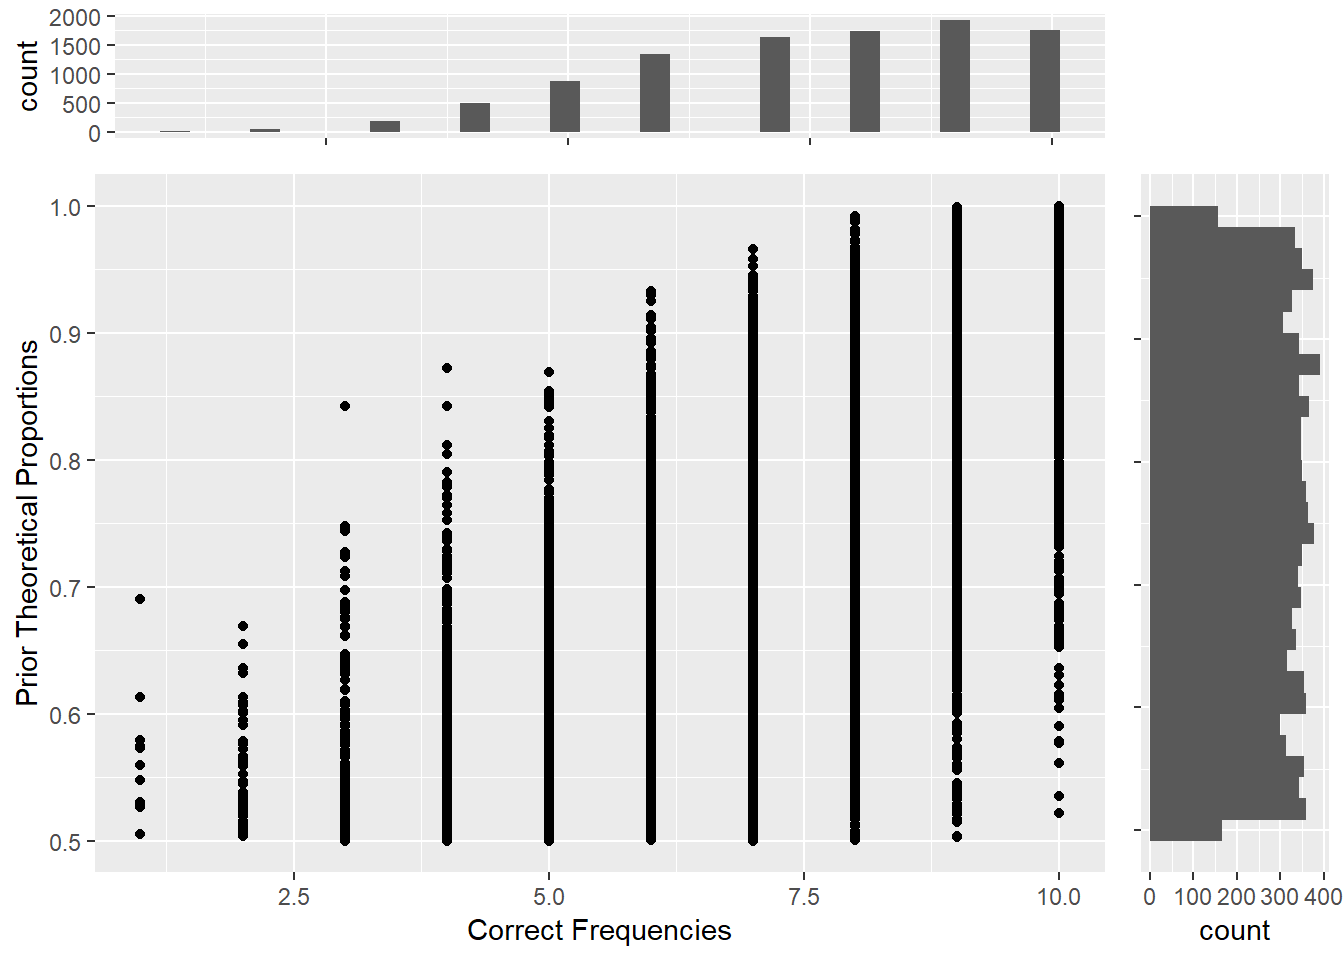 Bayesian inferece of initial study: Prior probability distribution (y axis) and Conditioning correct frequencies (x axis)